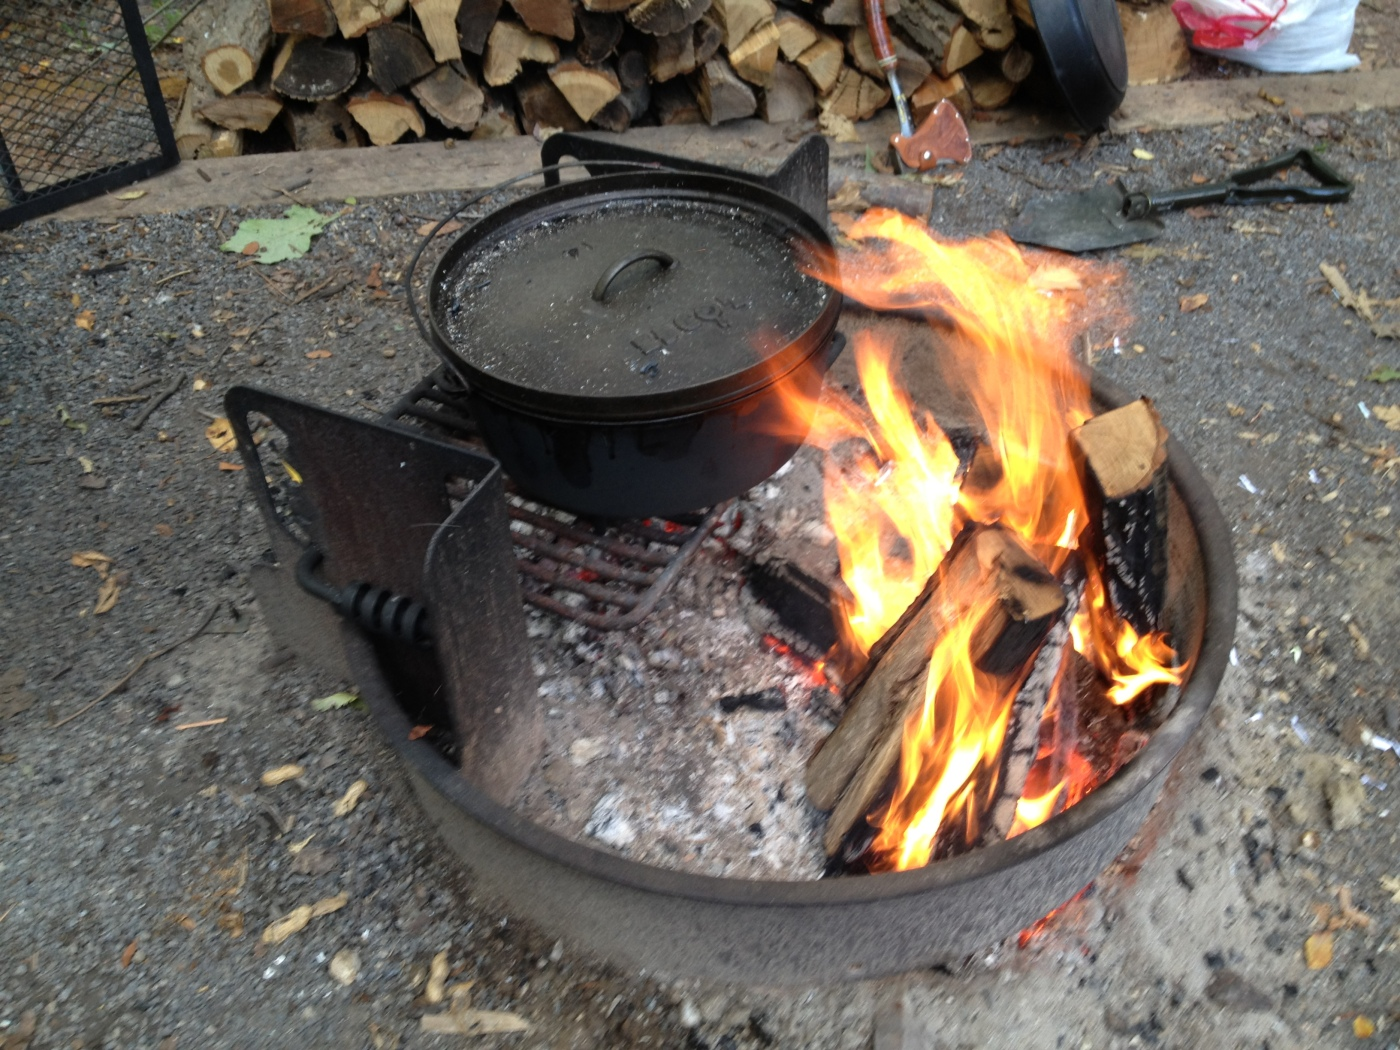 Campfire dutch oven beef beer stew get out camping for What to cook in a dutch oven camping